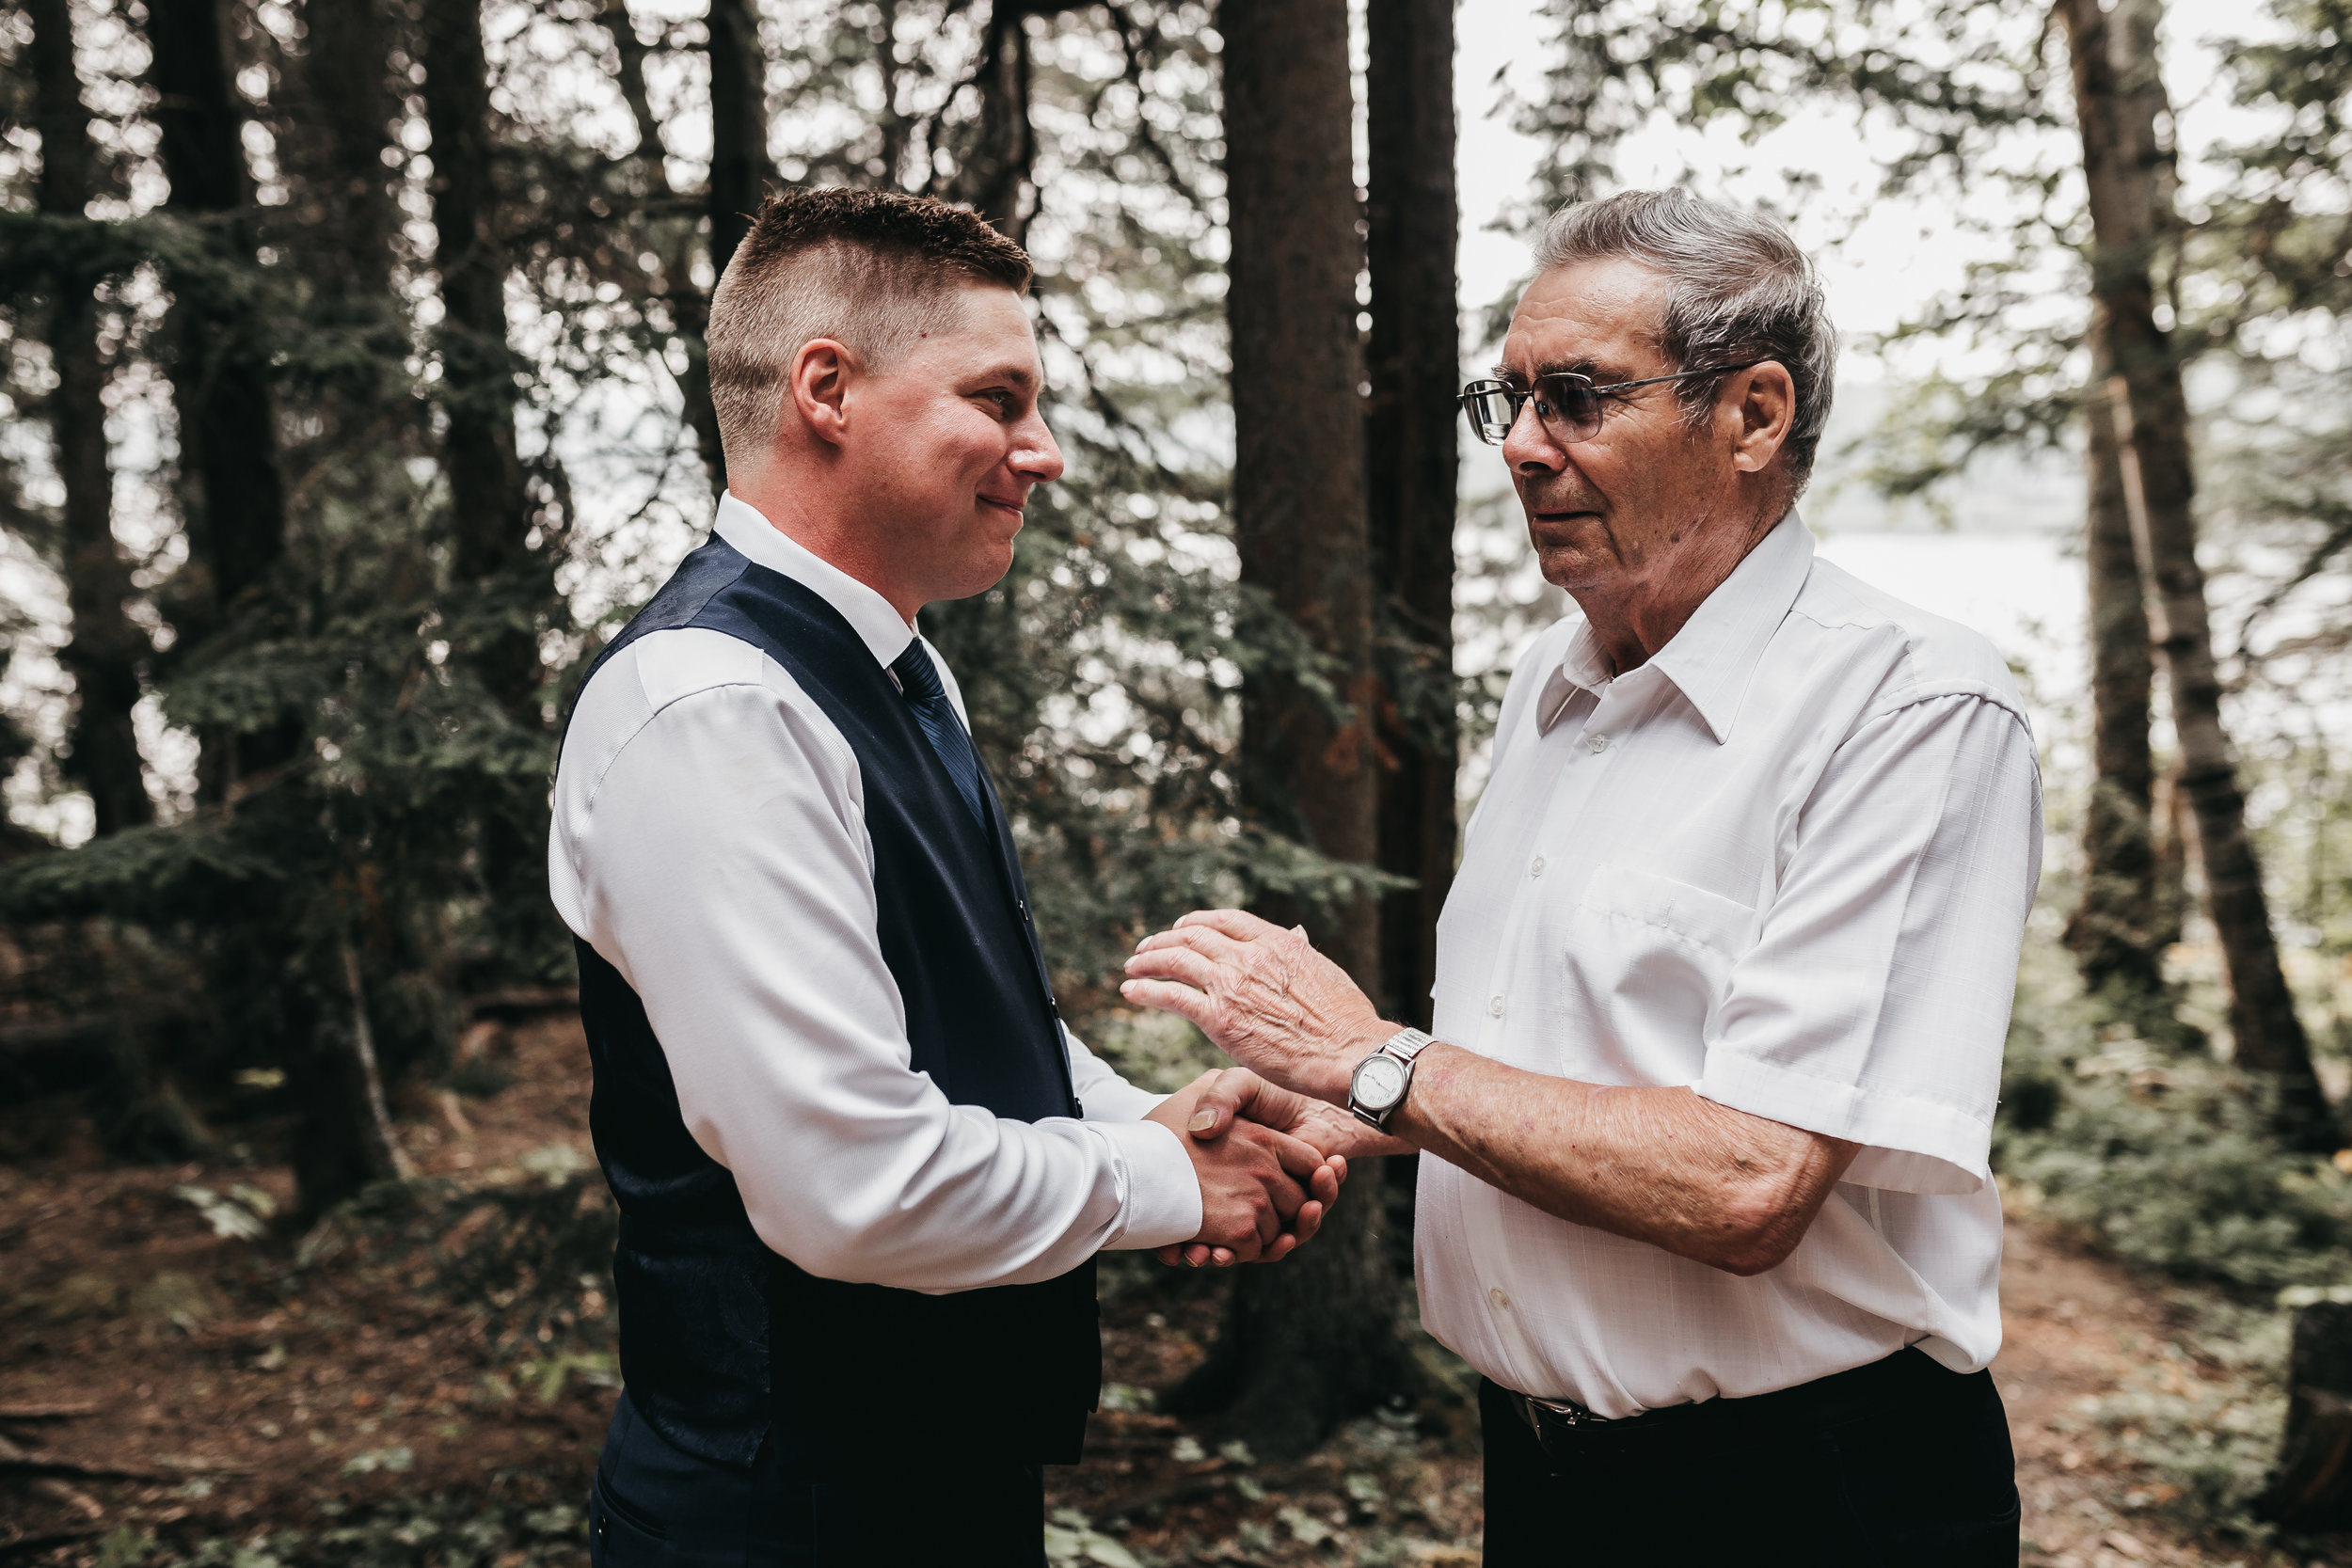 SimplePerfectionsPhotography.Mike+Courtney-515.jpg